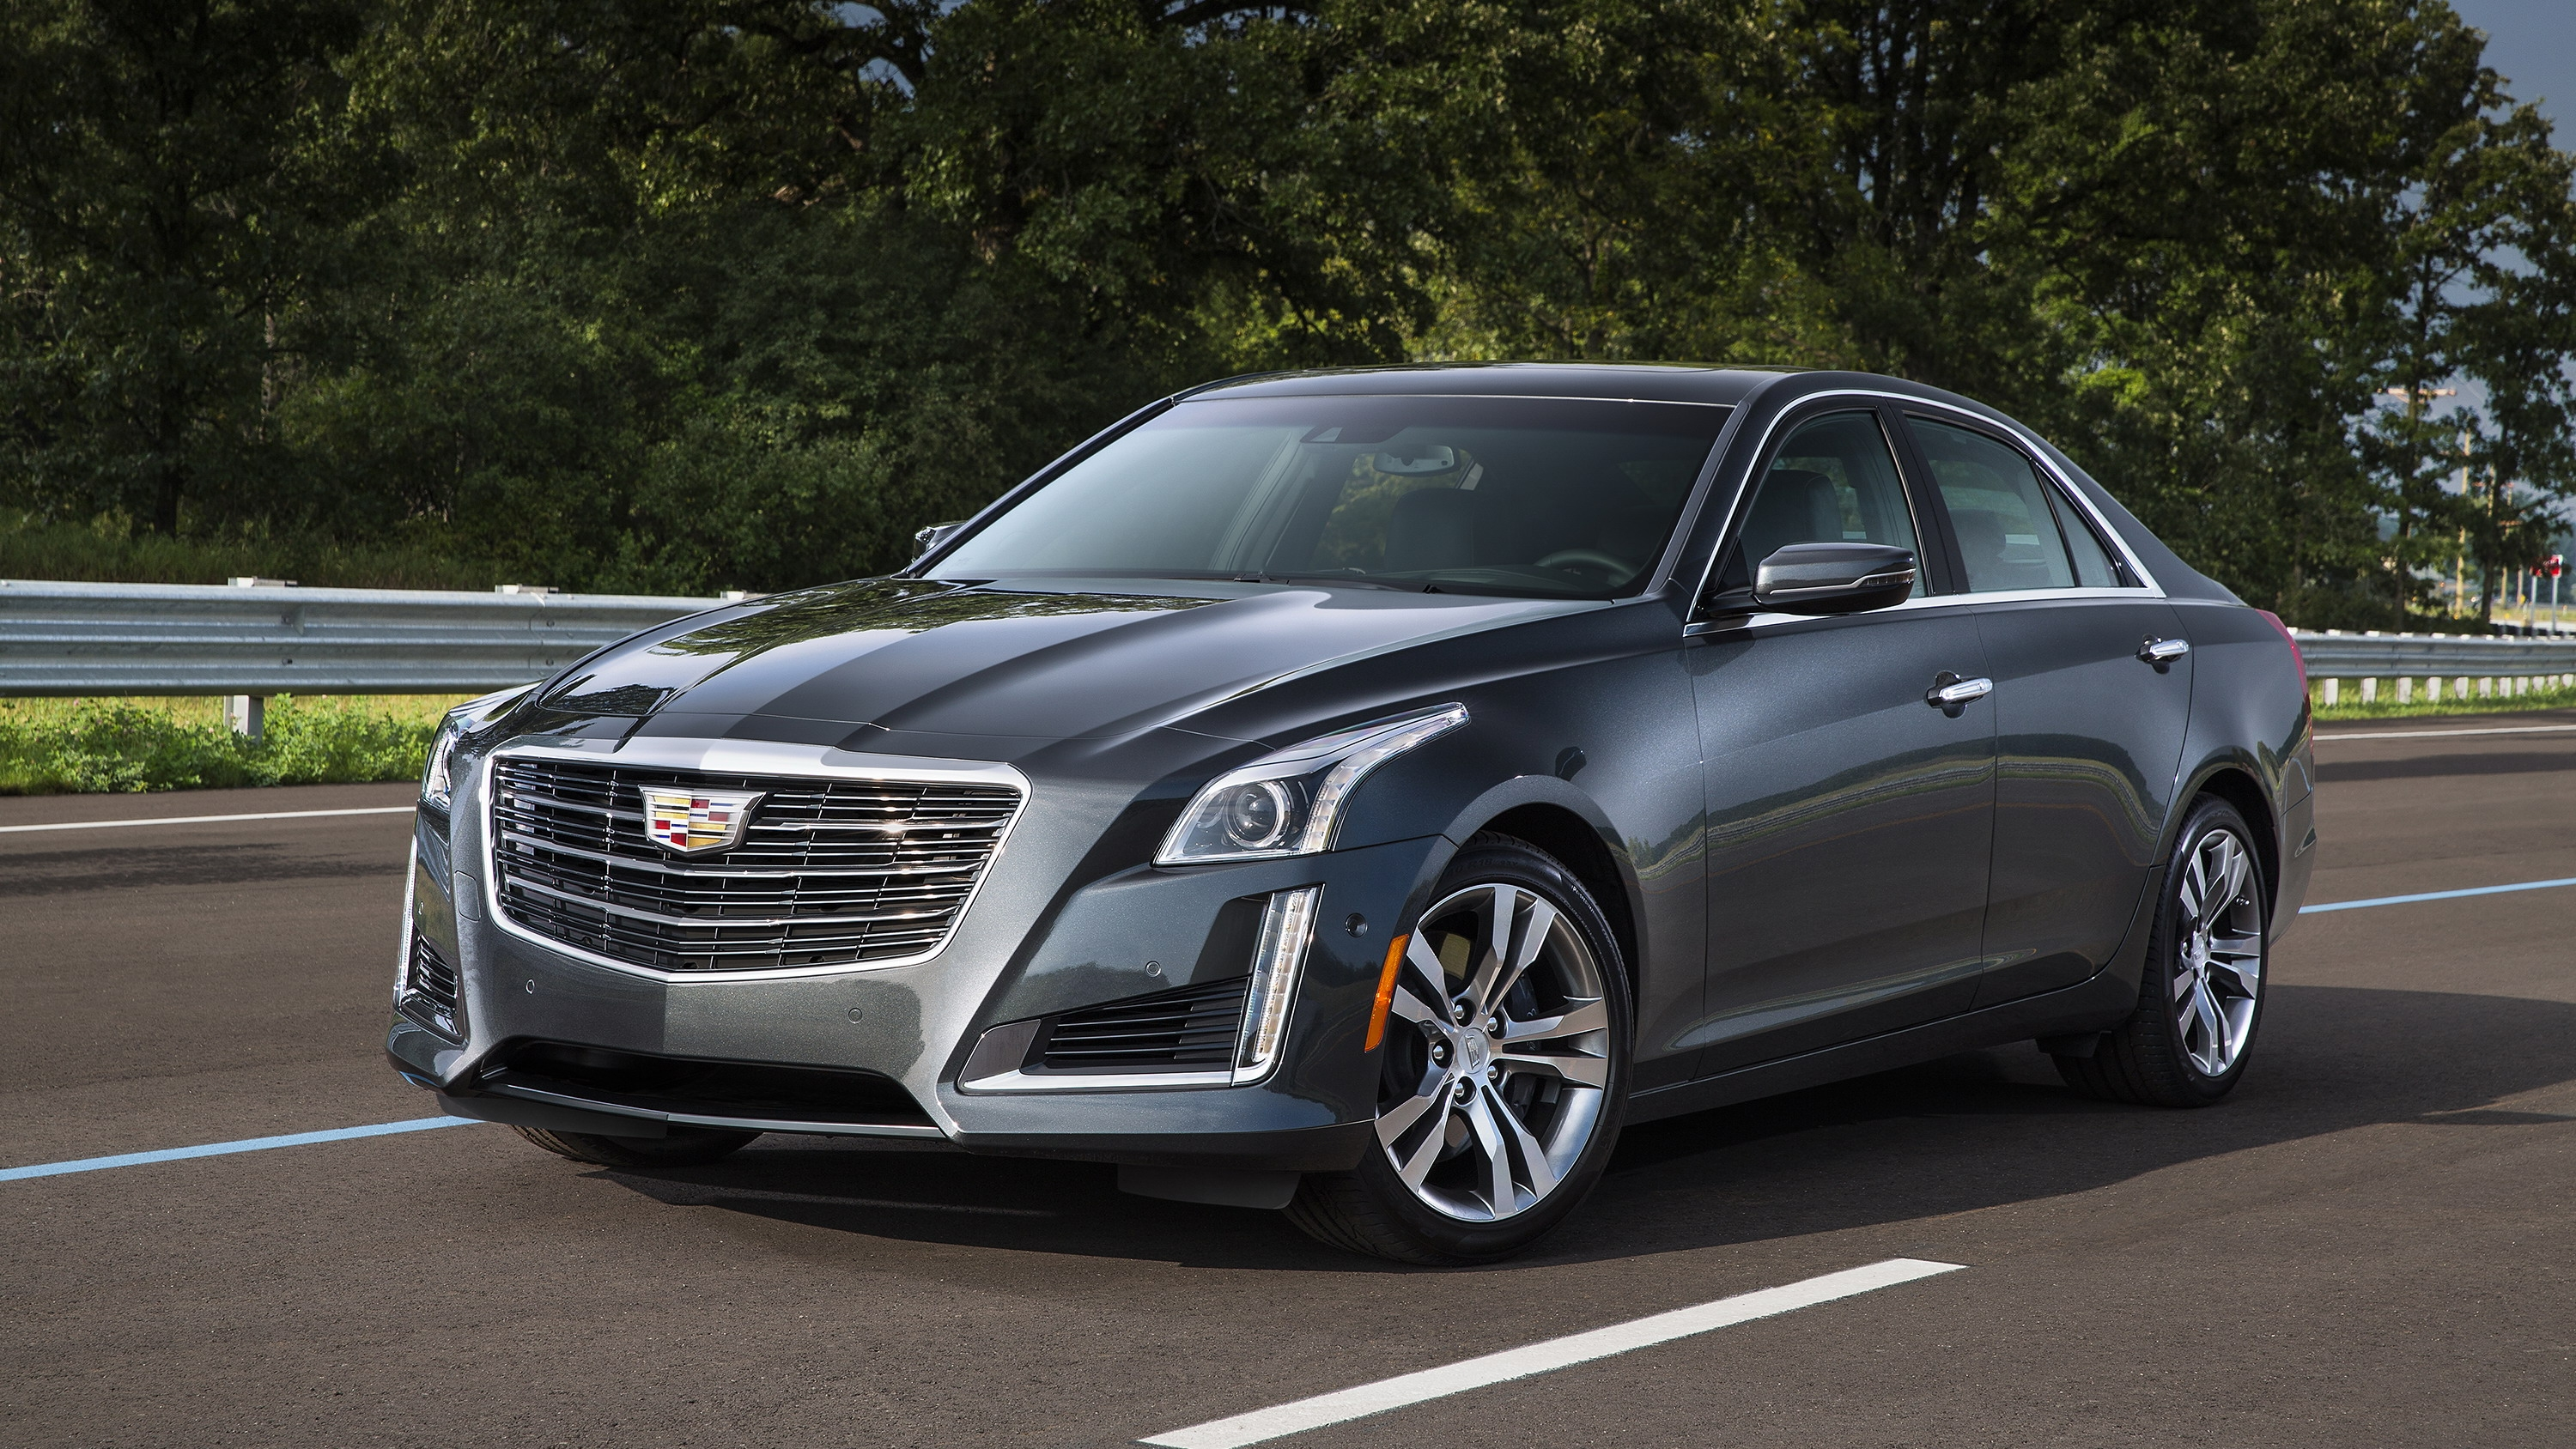 2015 2016 cadillac cts sedan review top speed. Black Bedroom Furniture Sets. Home Design Ideas